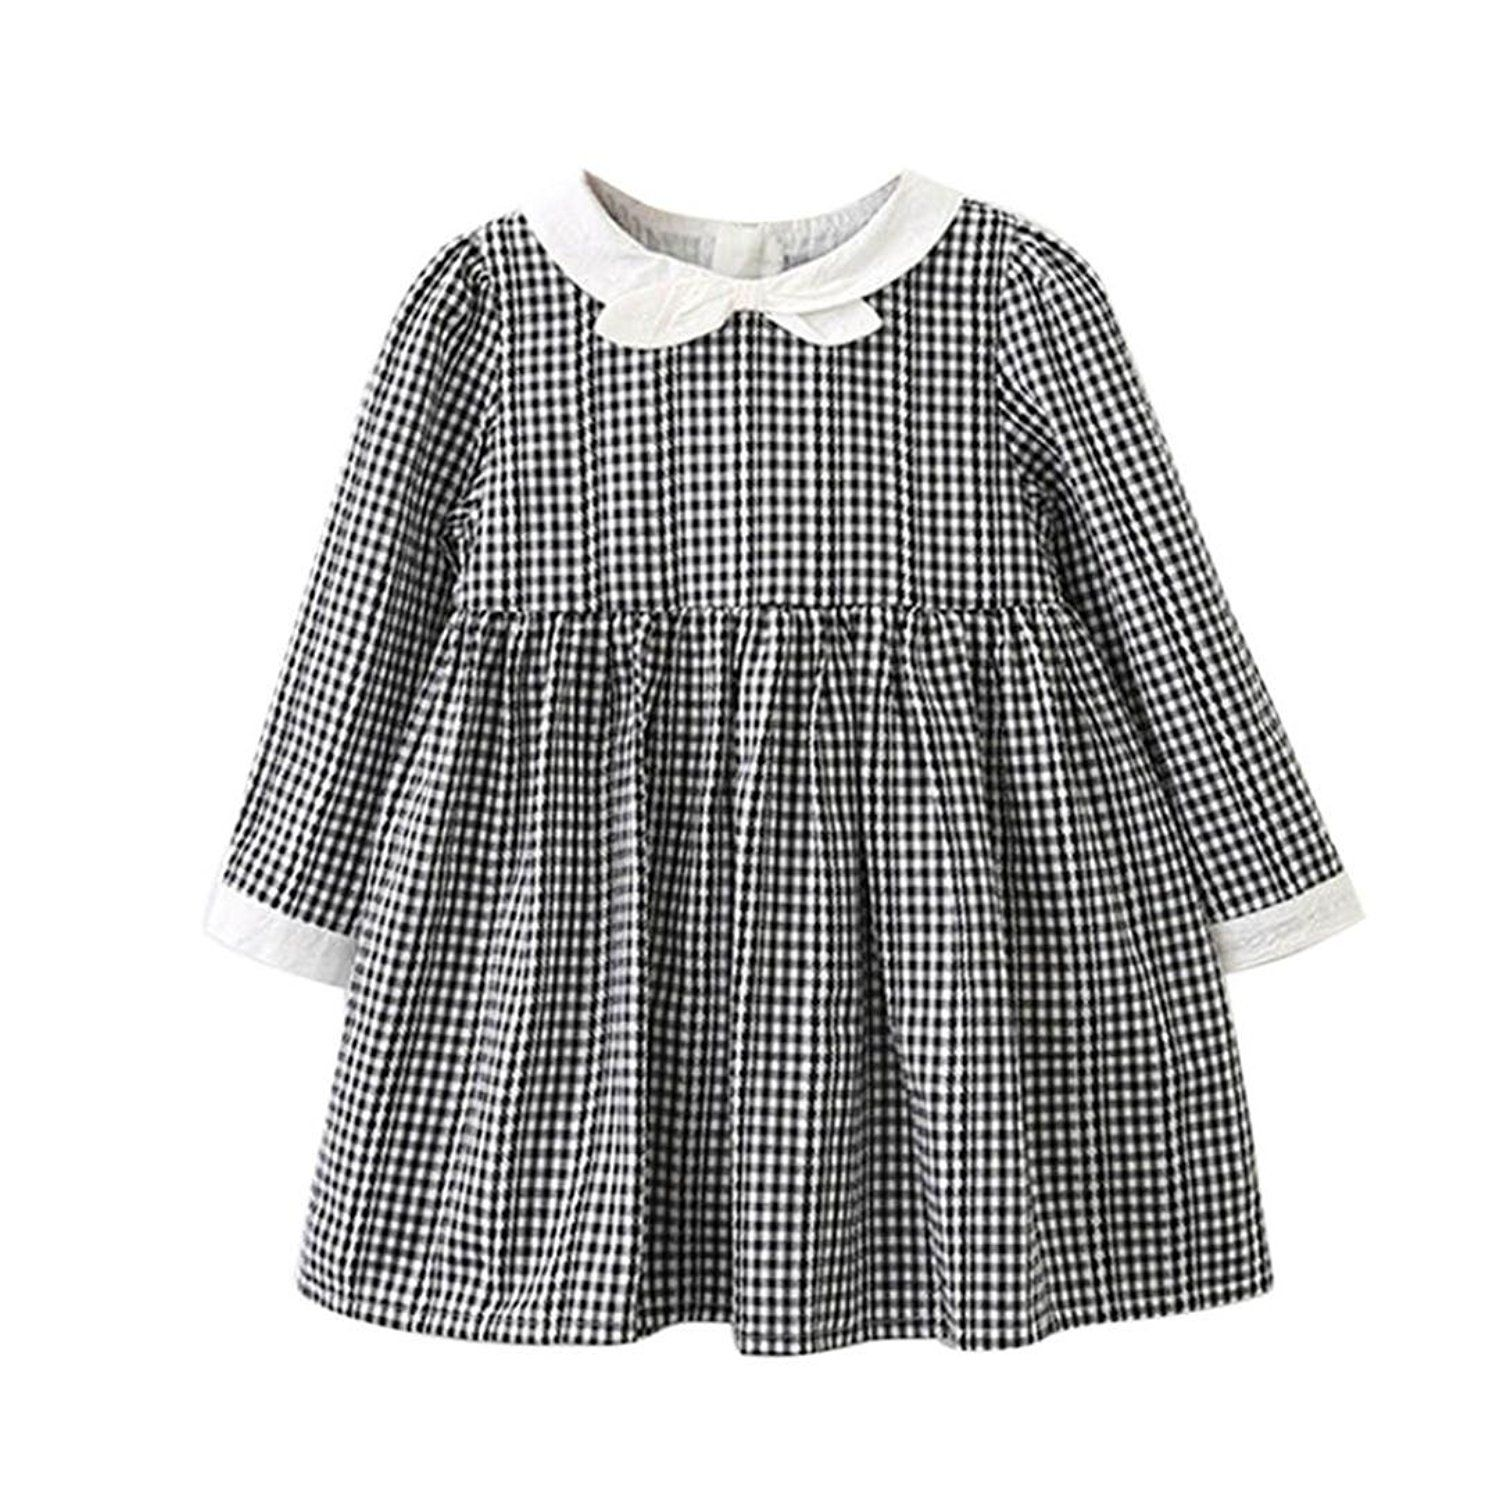 Amazon.com: Sunsee Baby Girls Long Sleeve Plaid Bowknot Party ...